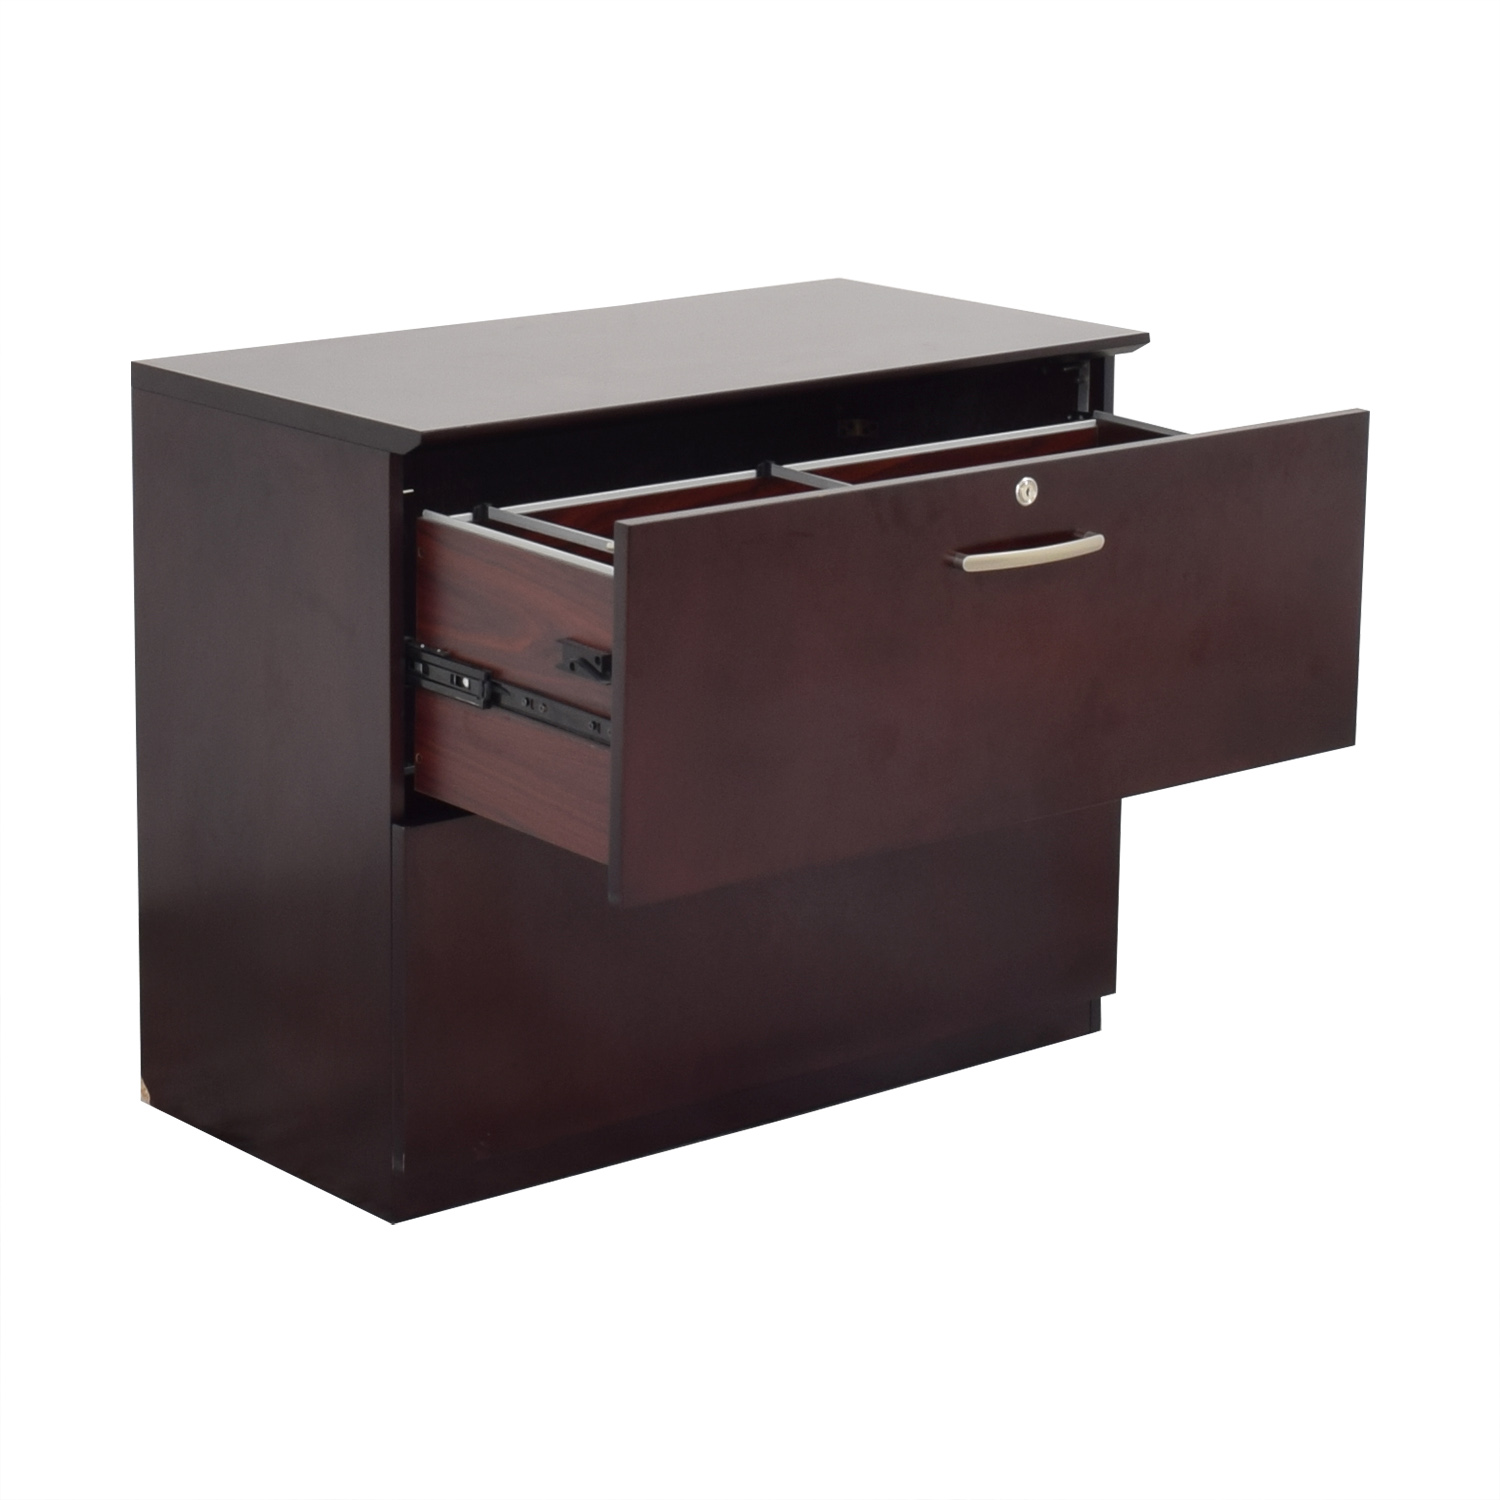 Office Filing Cabinet on sale